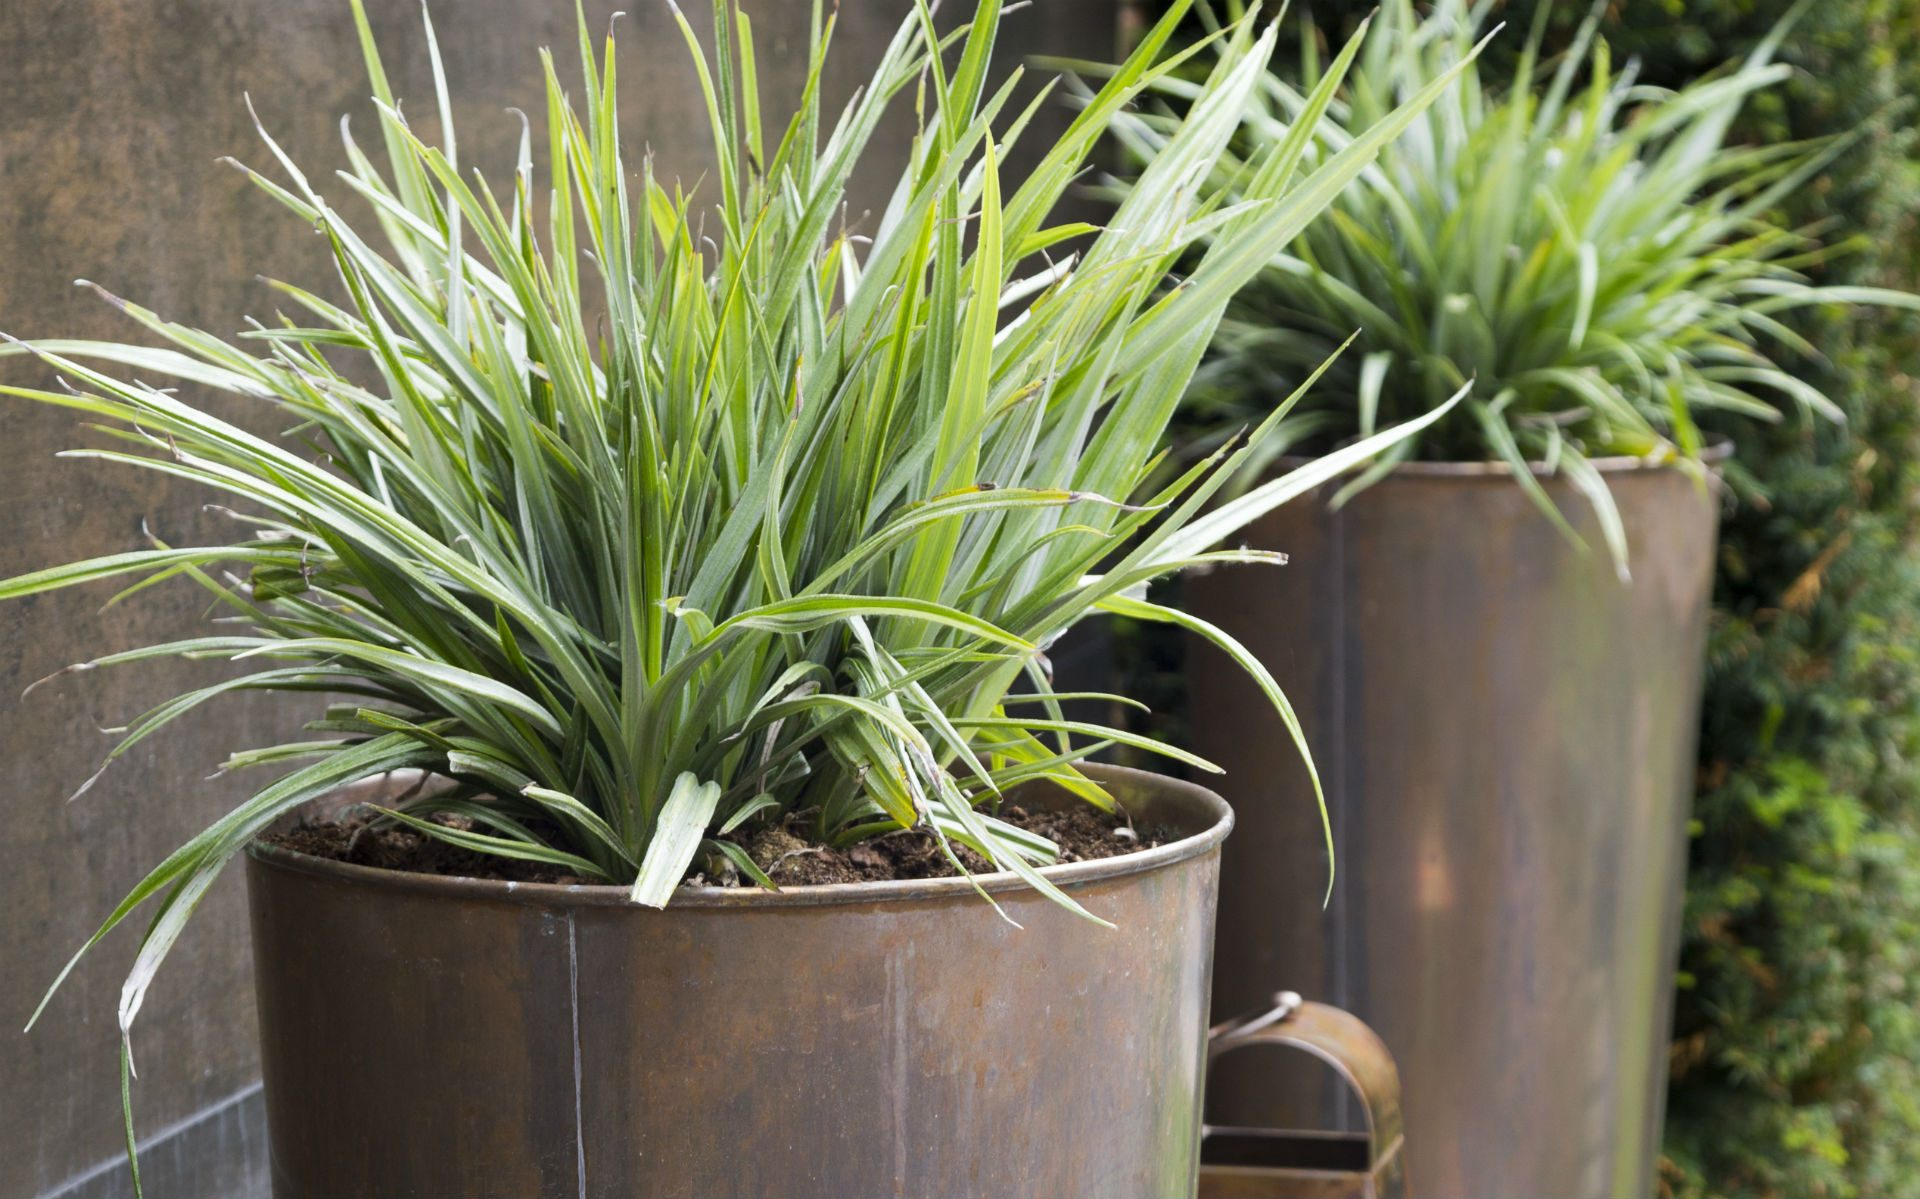 Portfolio BALI Award Winning Small Urban Garden Beaulieu Chelmsford Essex Copper Vas Planters